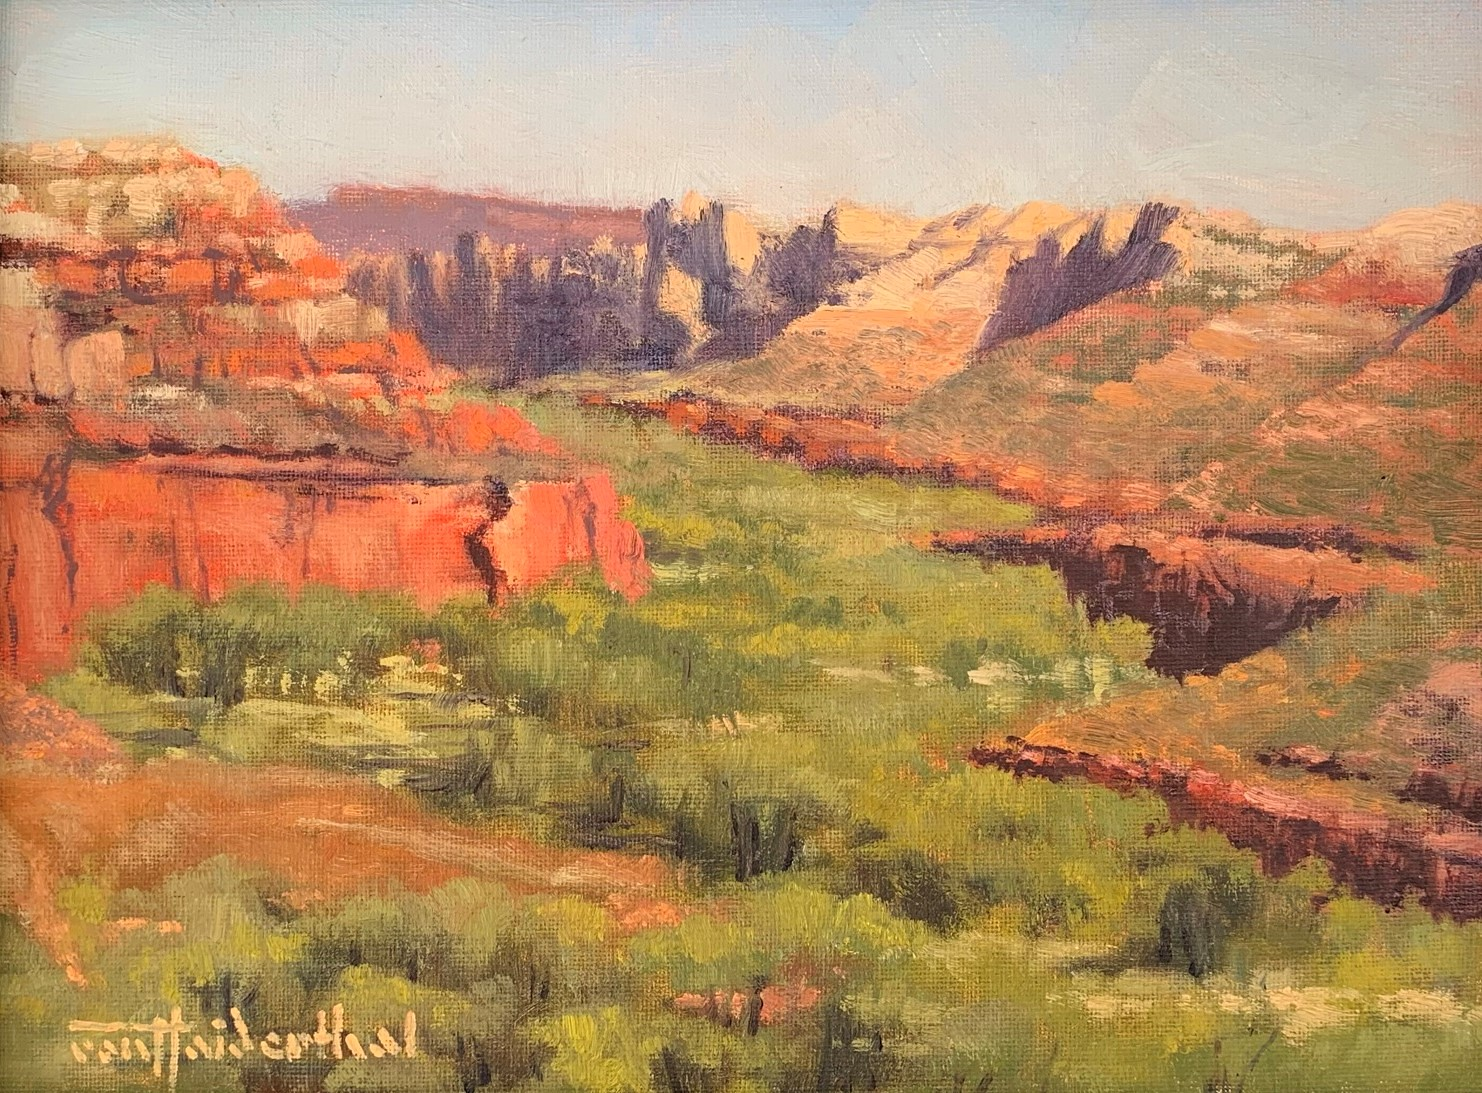 2021 Grand Staircase-Escalante National Monument Artist in Residence